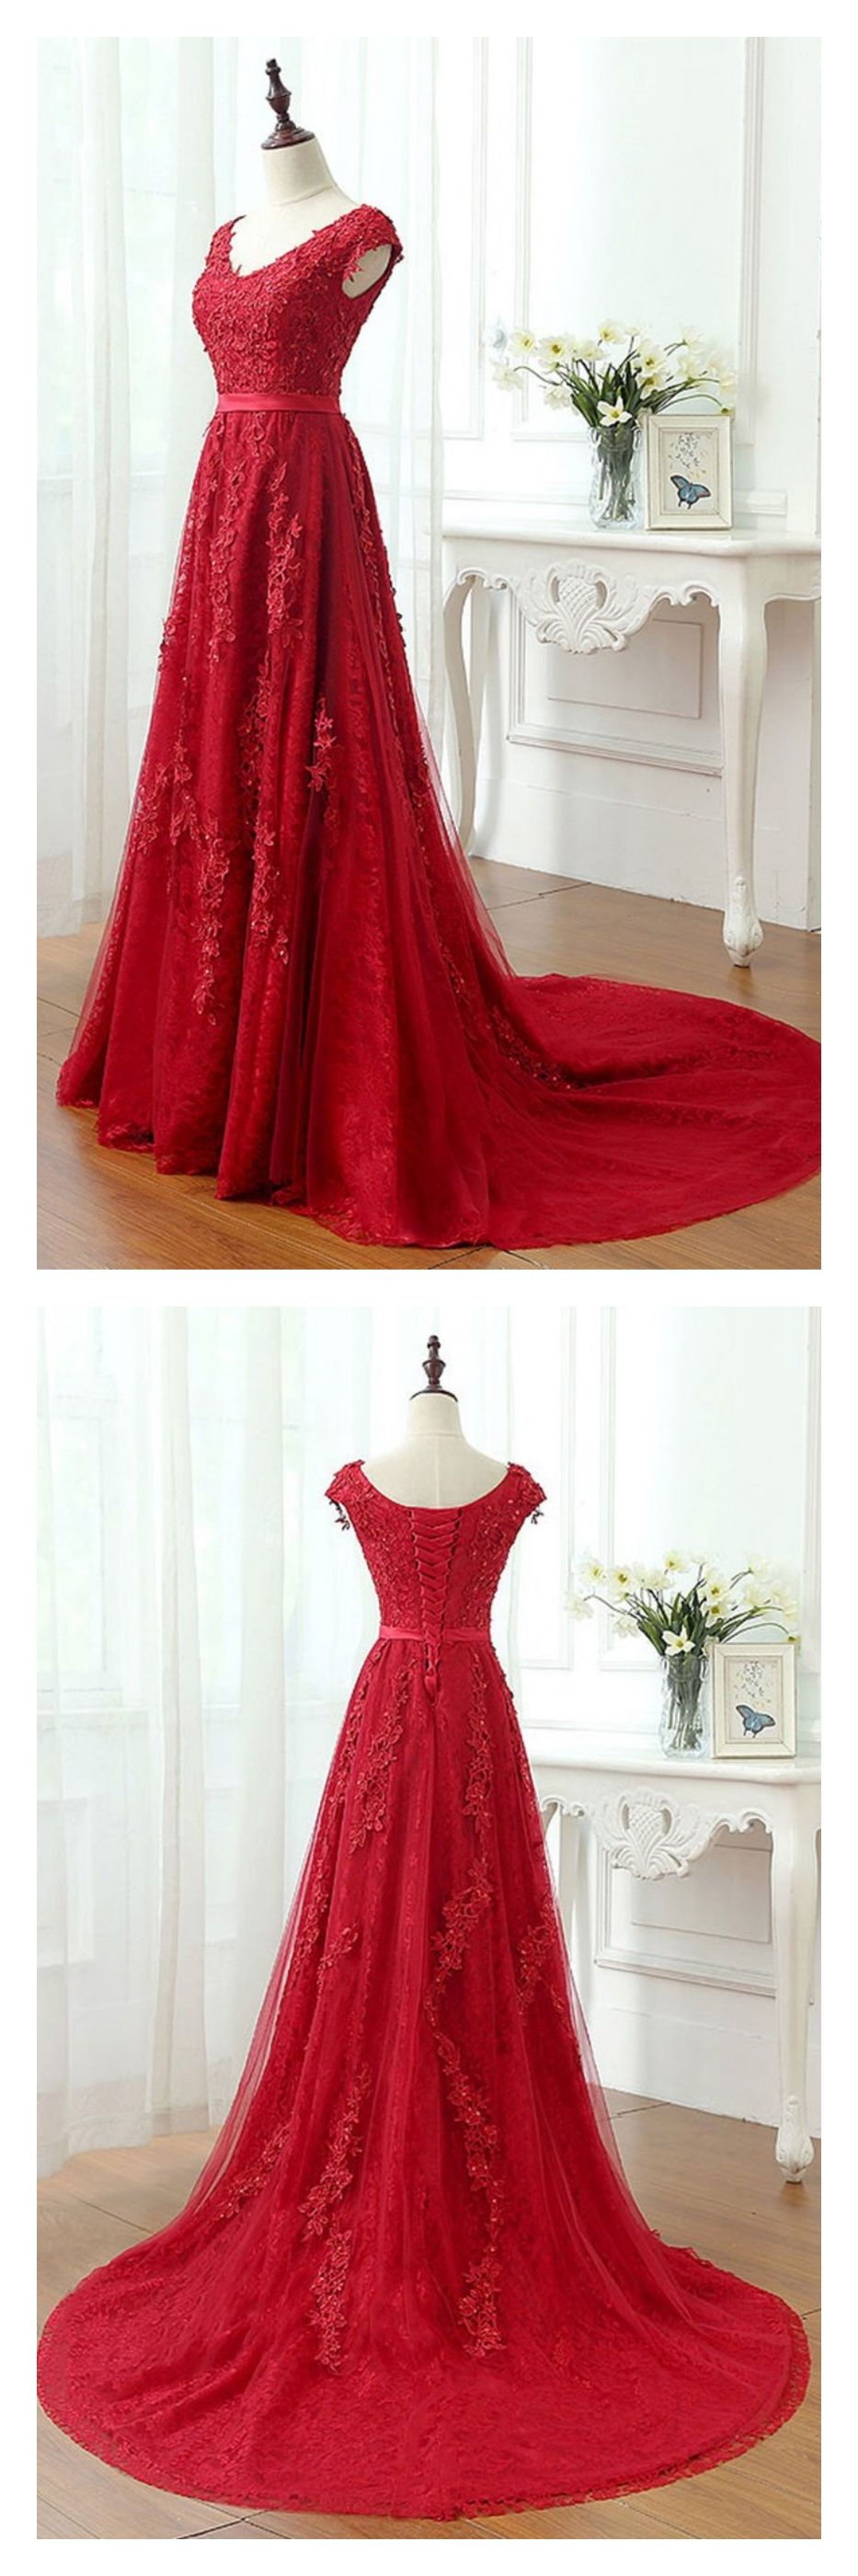 A line red vneck long lace prom dresses with cap sleevesed